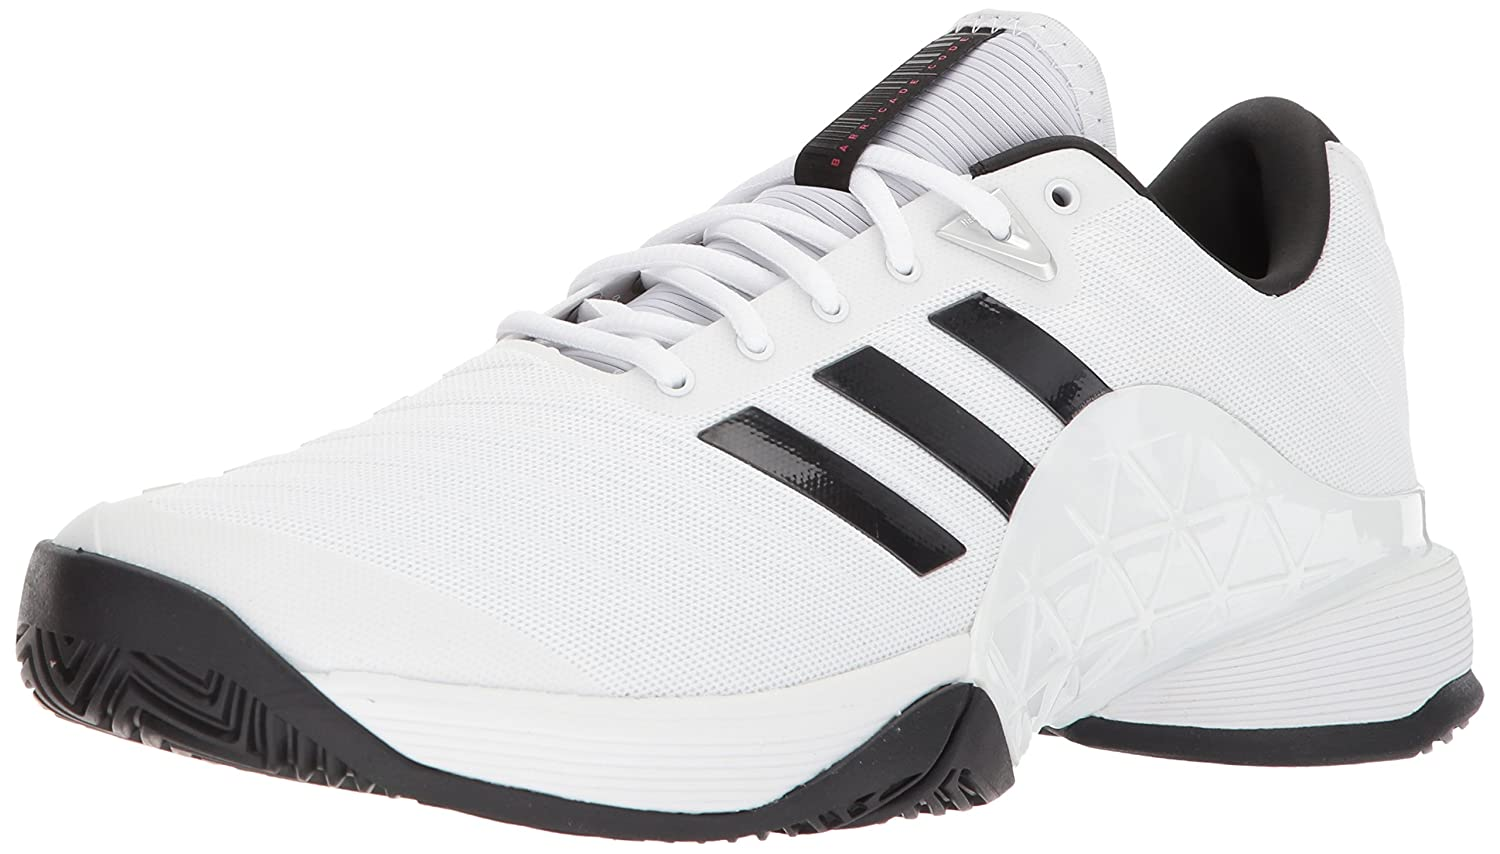 separation shoes 964ef b2be0 Amazon.com  adidas Mens Barricade 2018 Tennis Shoe  Tennis  Racquet  Sports